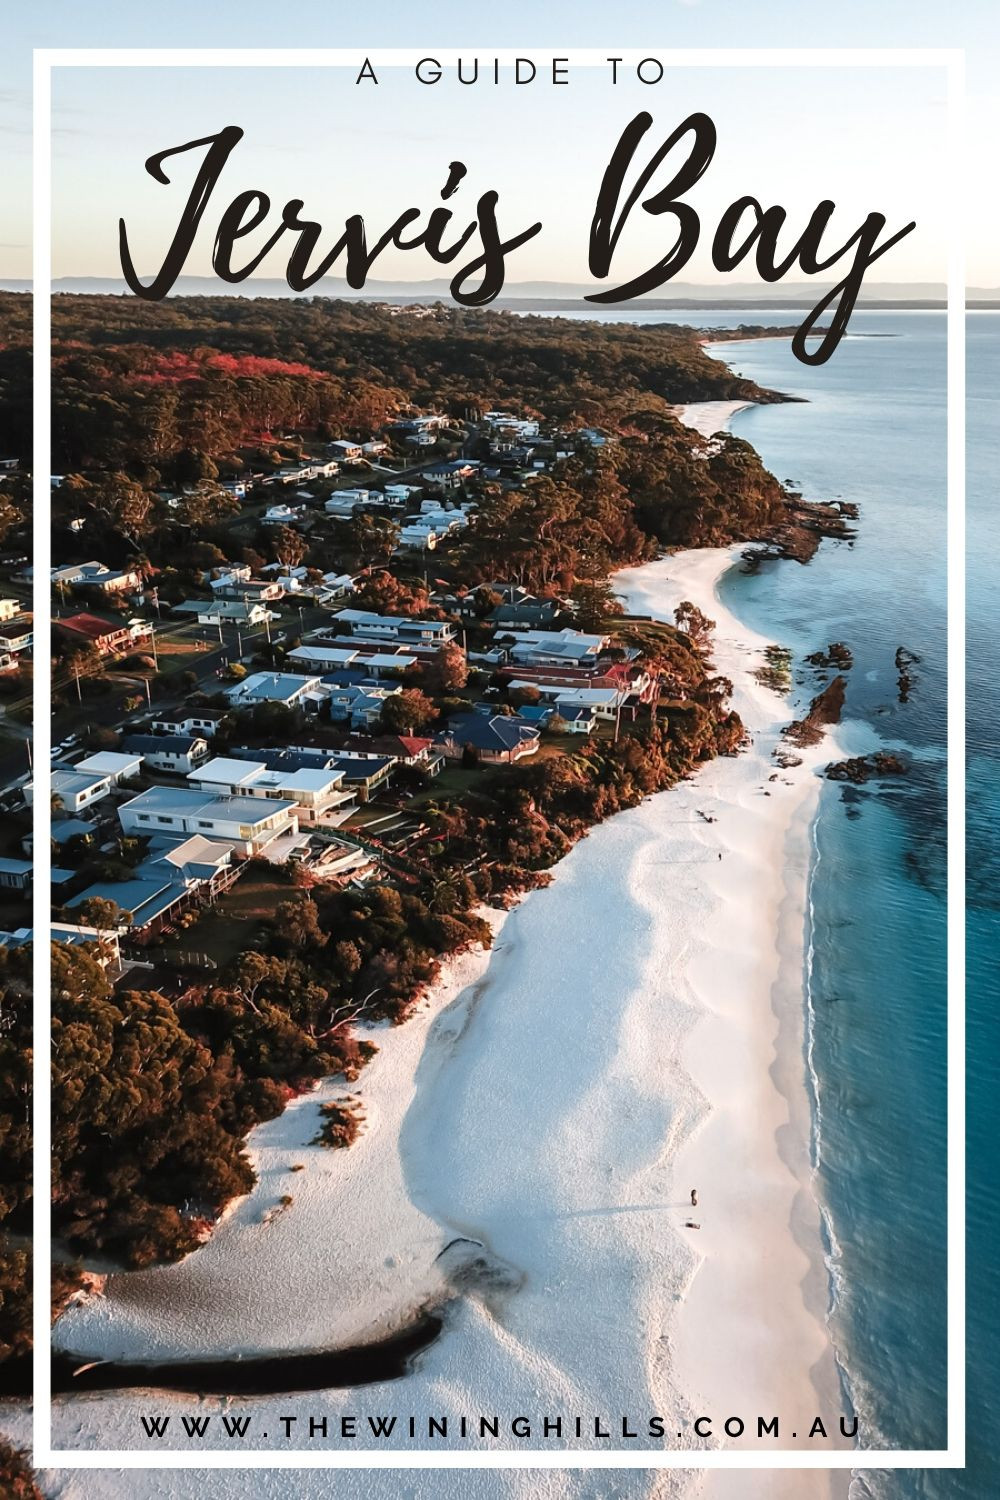 A guide to Jervis Bay. What to do, where to eat, and what to see!